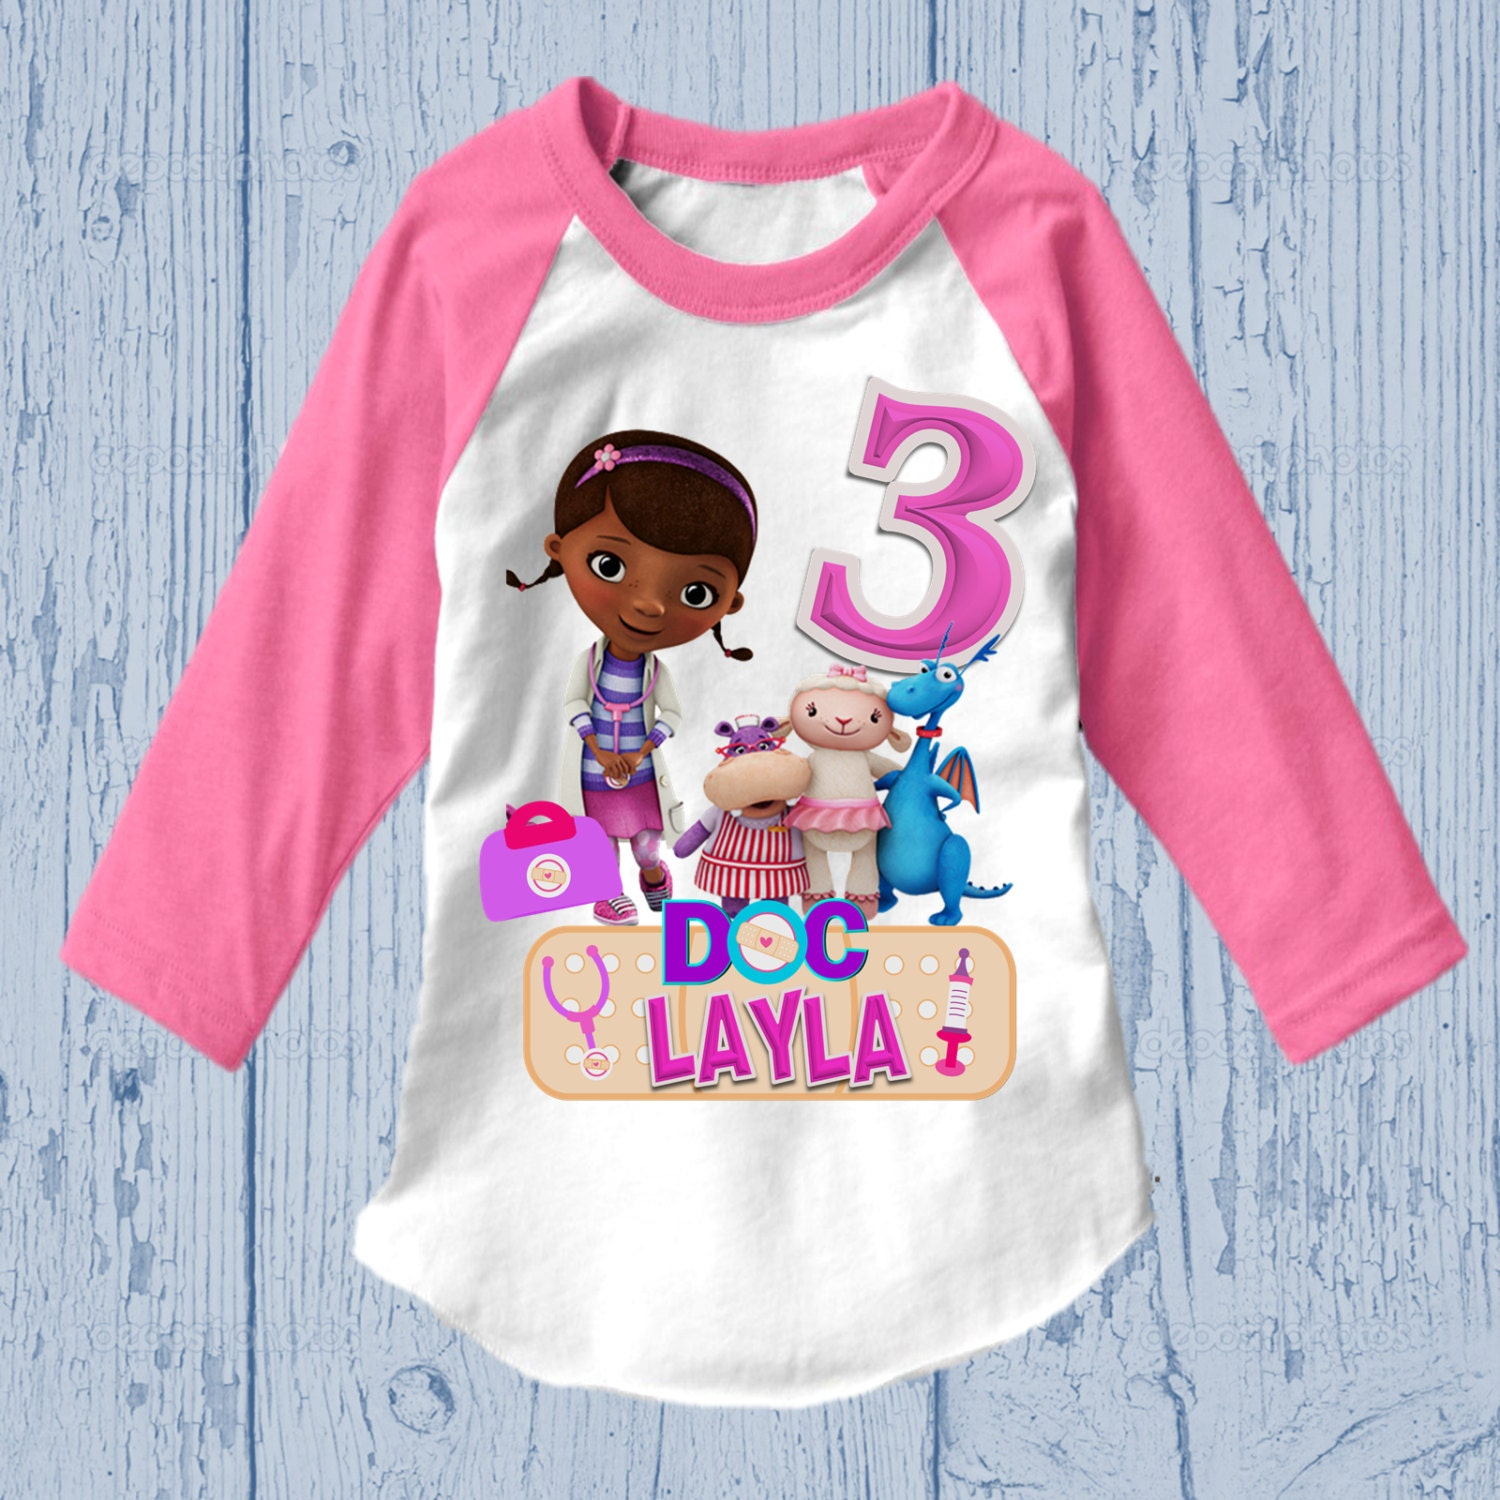 Doc McStuffins Birthday Shirt Different Styles Available   Etsy